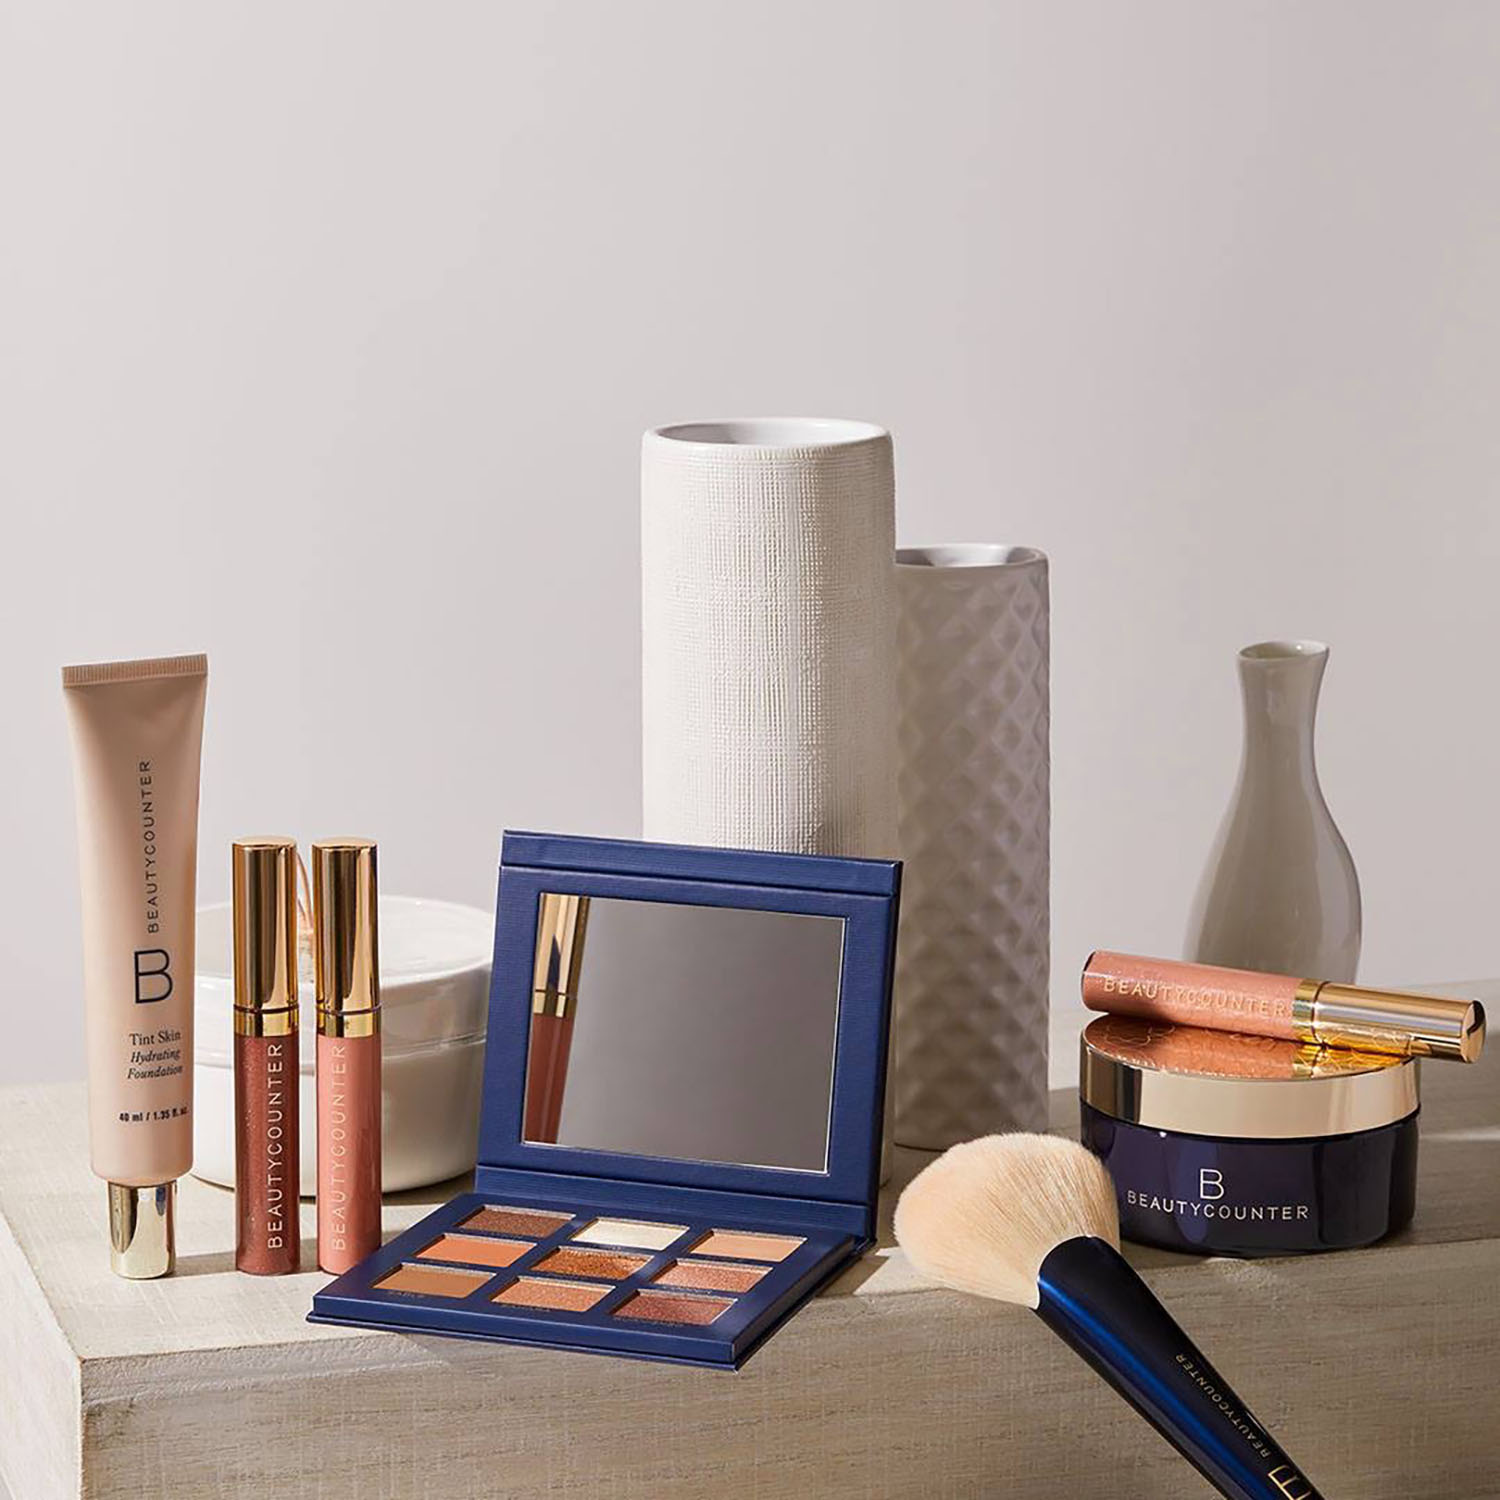 Making Cleaner and Safer Beauty Choices with Beautycounter on Brighter Darling blog